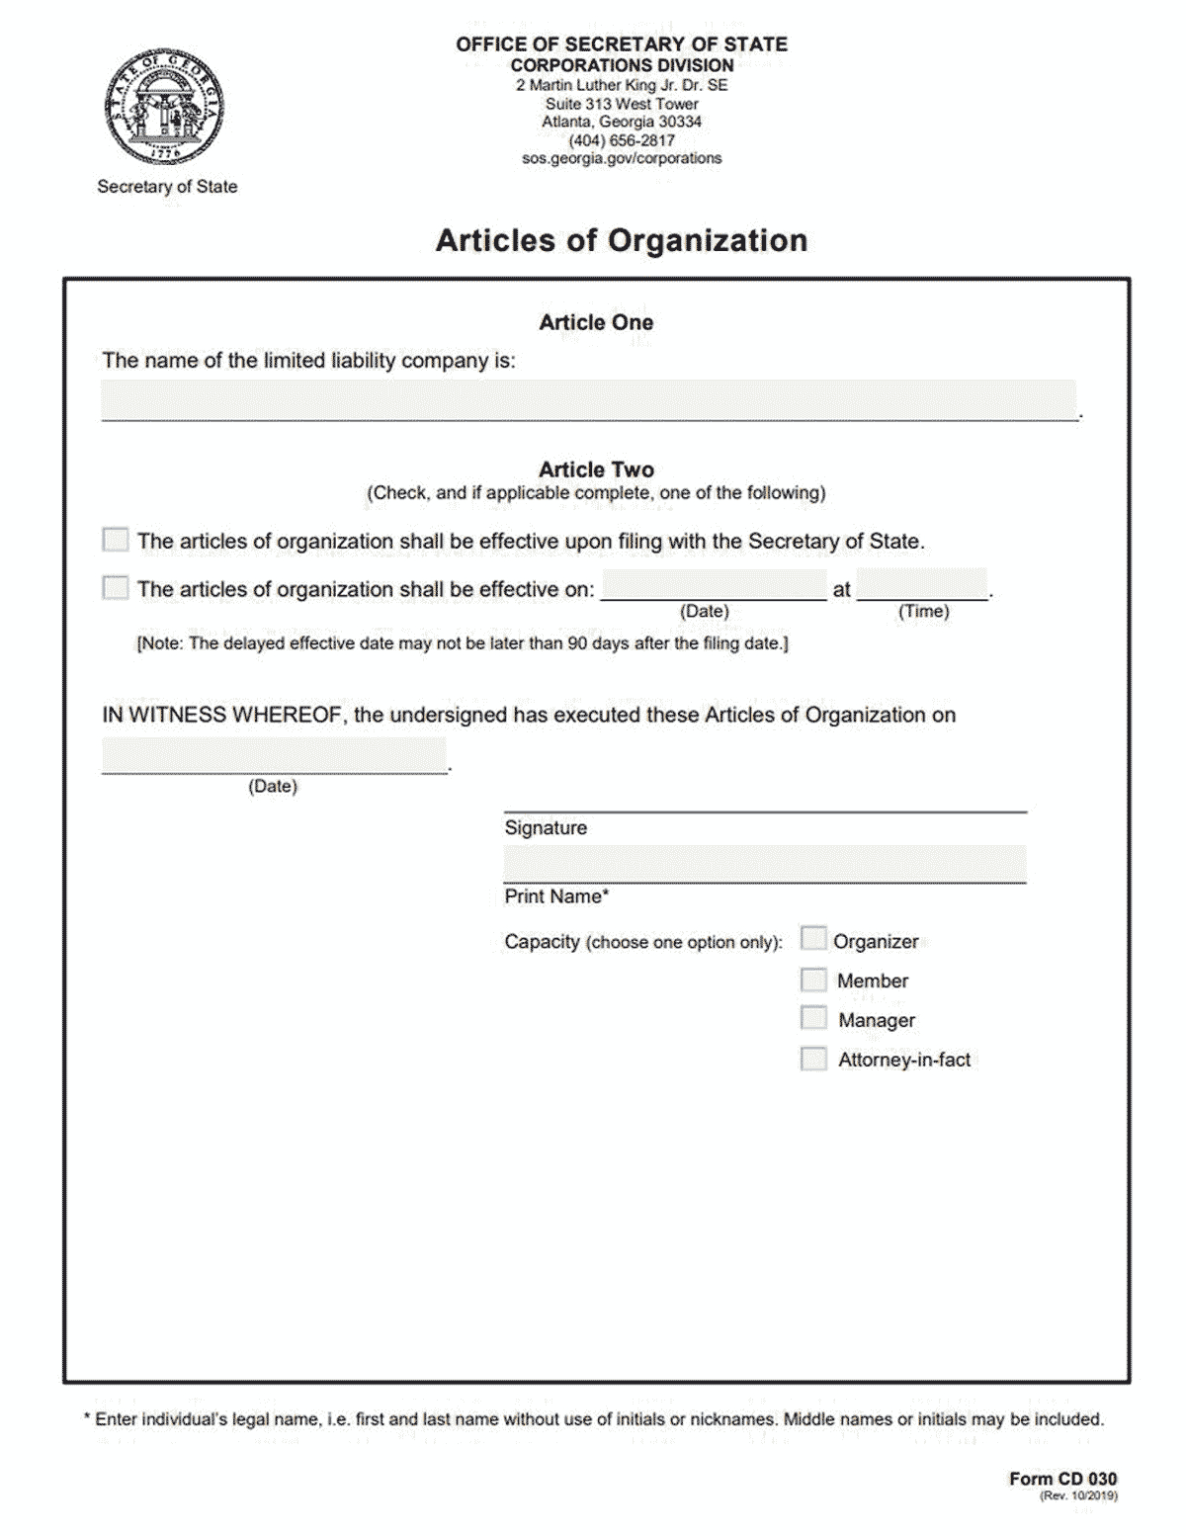 Llc Georgia How To Form An Llc In Georgia For Llc Annual Report Template Best Templates Templates Professional Templates